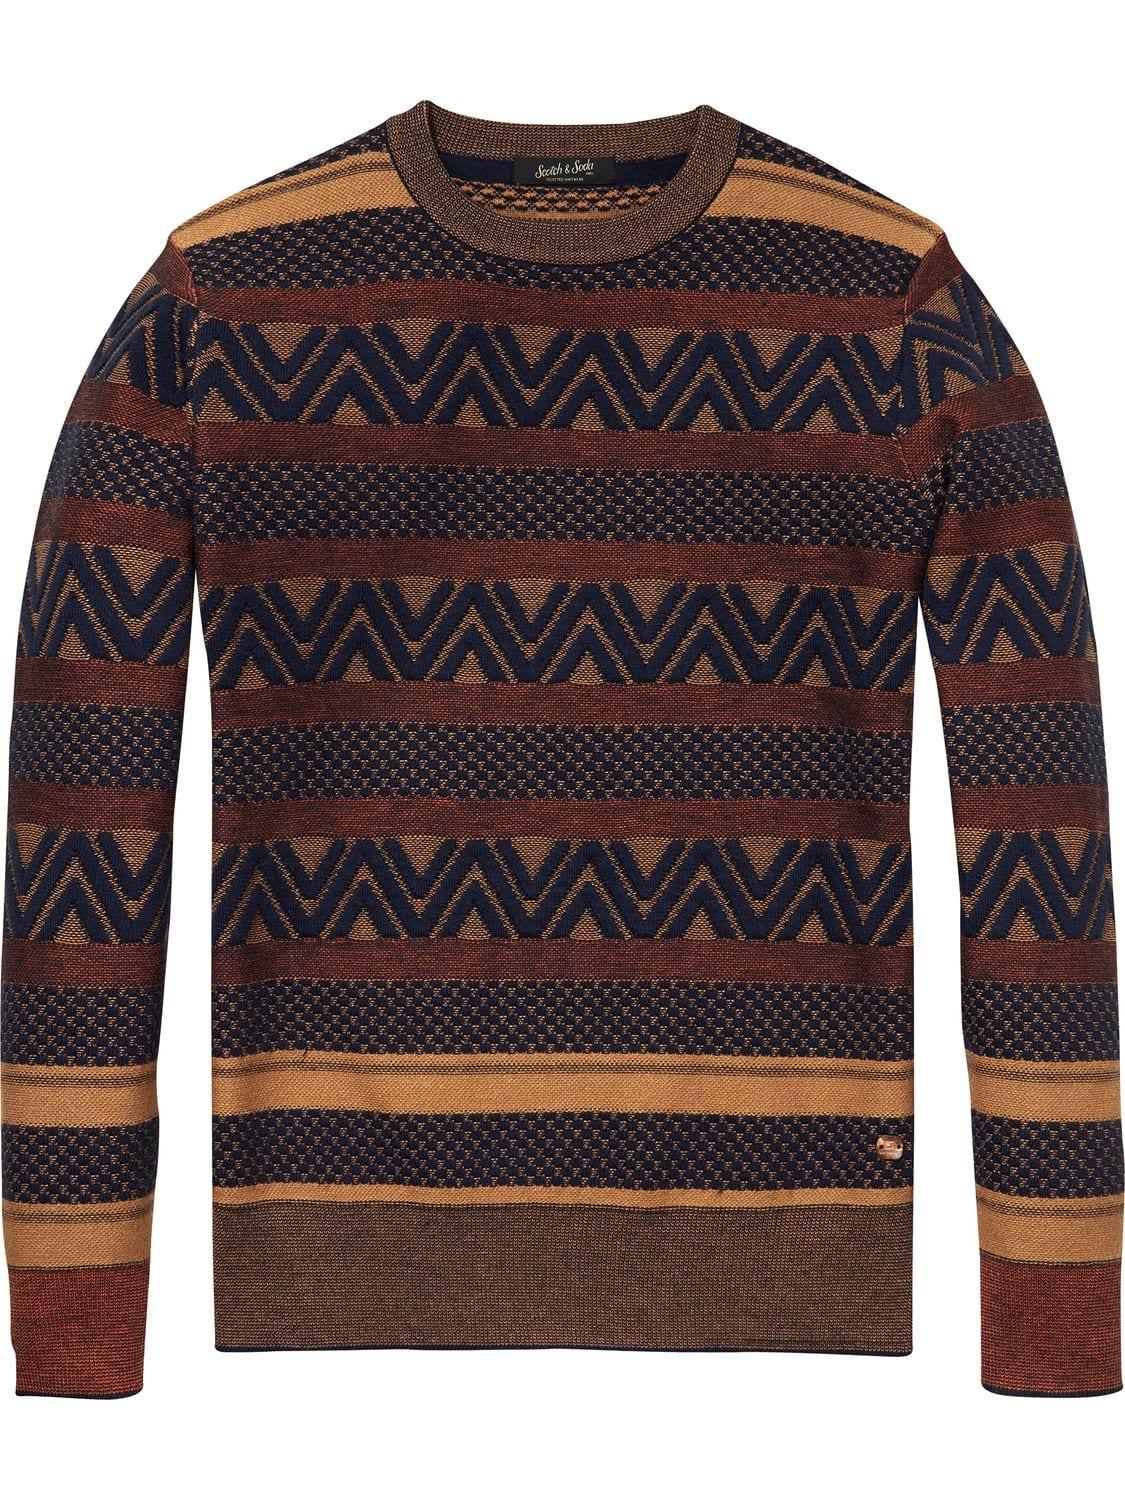 Structured Pullover Regular fit (139806) Scotch & Soda - 7clothing Cardiff